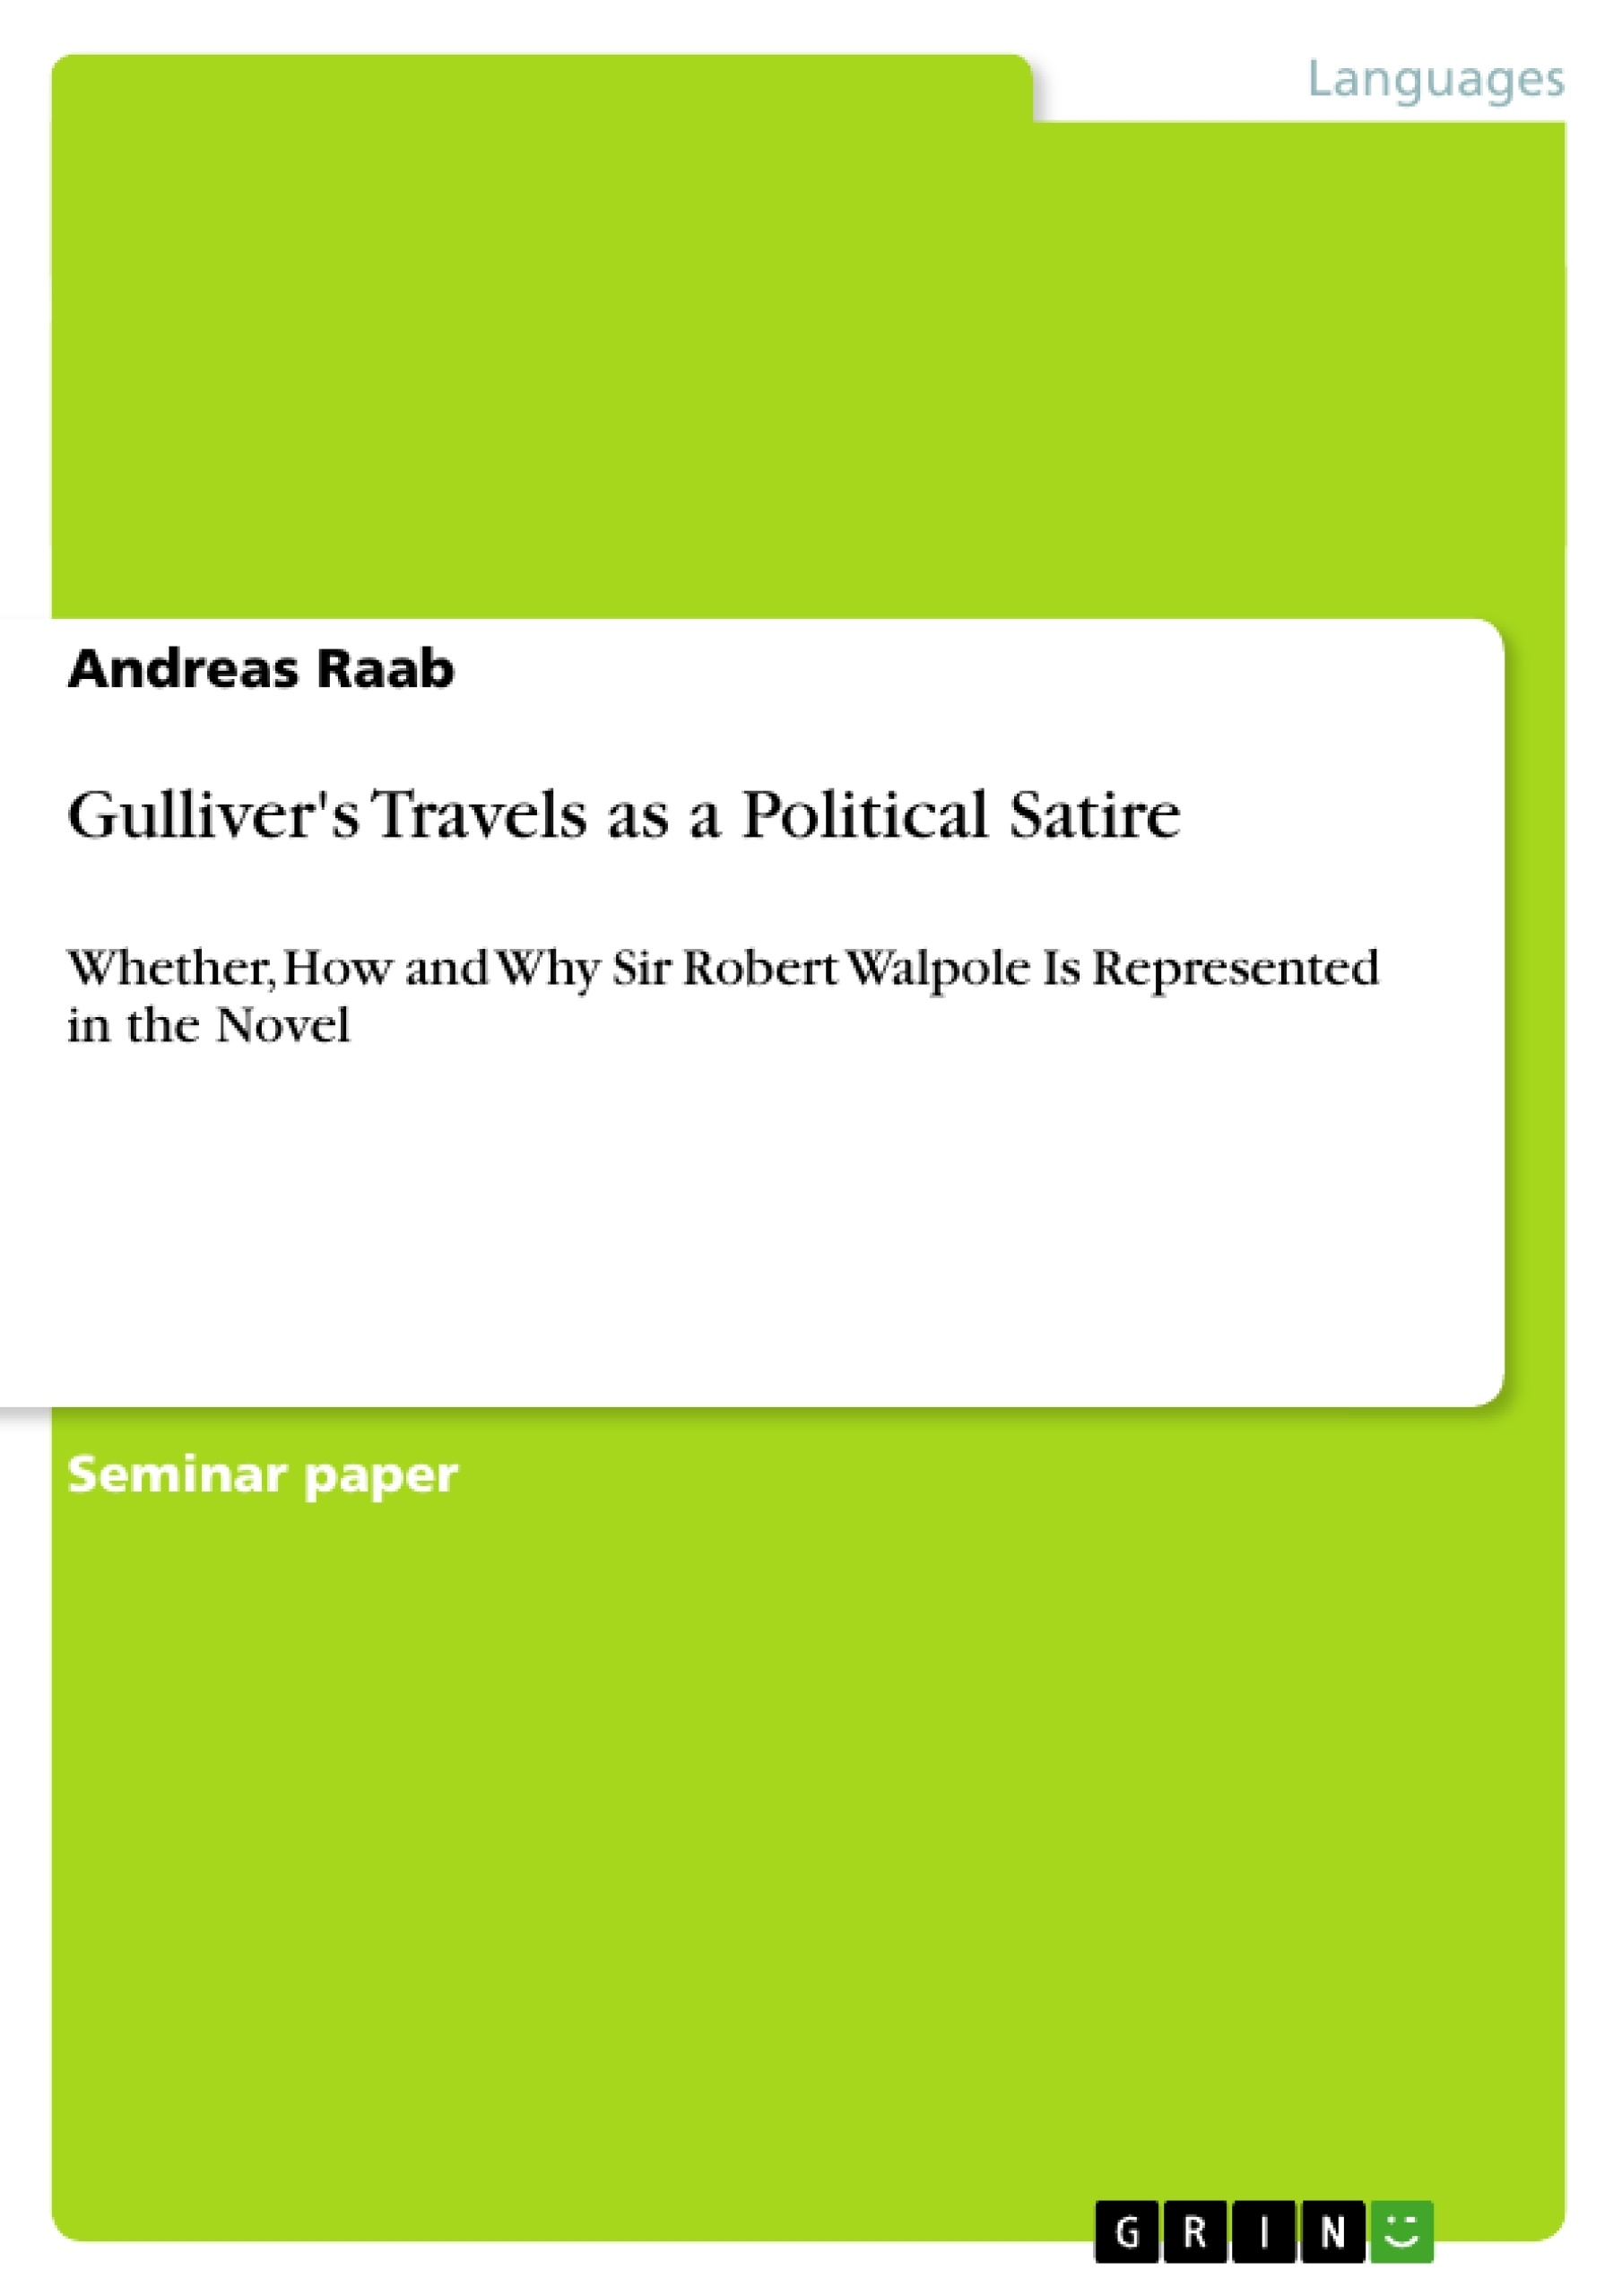 gullivers travels by swift essay Gulliver's travels is a classic example of eighteenth century satire, one of swift's greatest works in an outcry against the values and practices of his time while his words ruthlessly attack numerous aspects of human society and human character, by the nature of satire his weapon is humour.